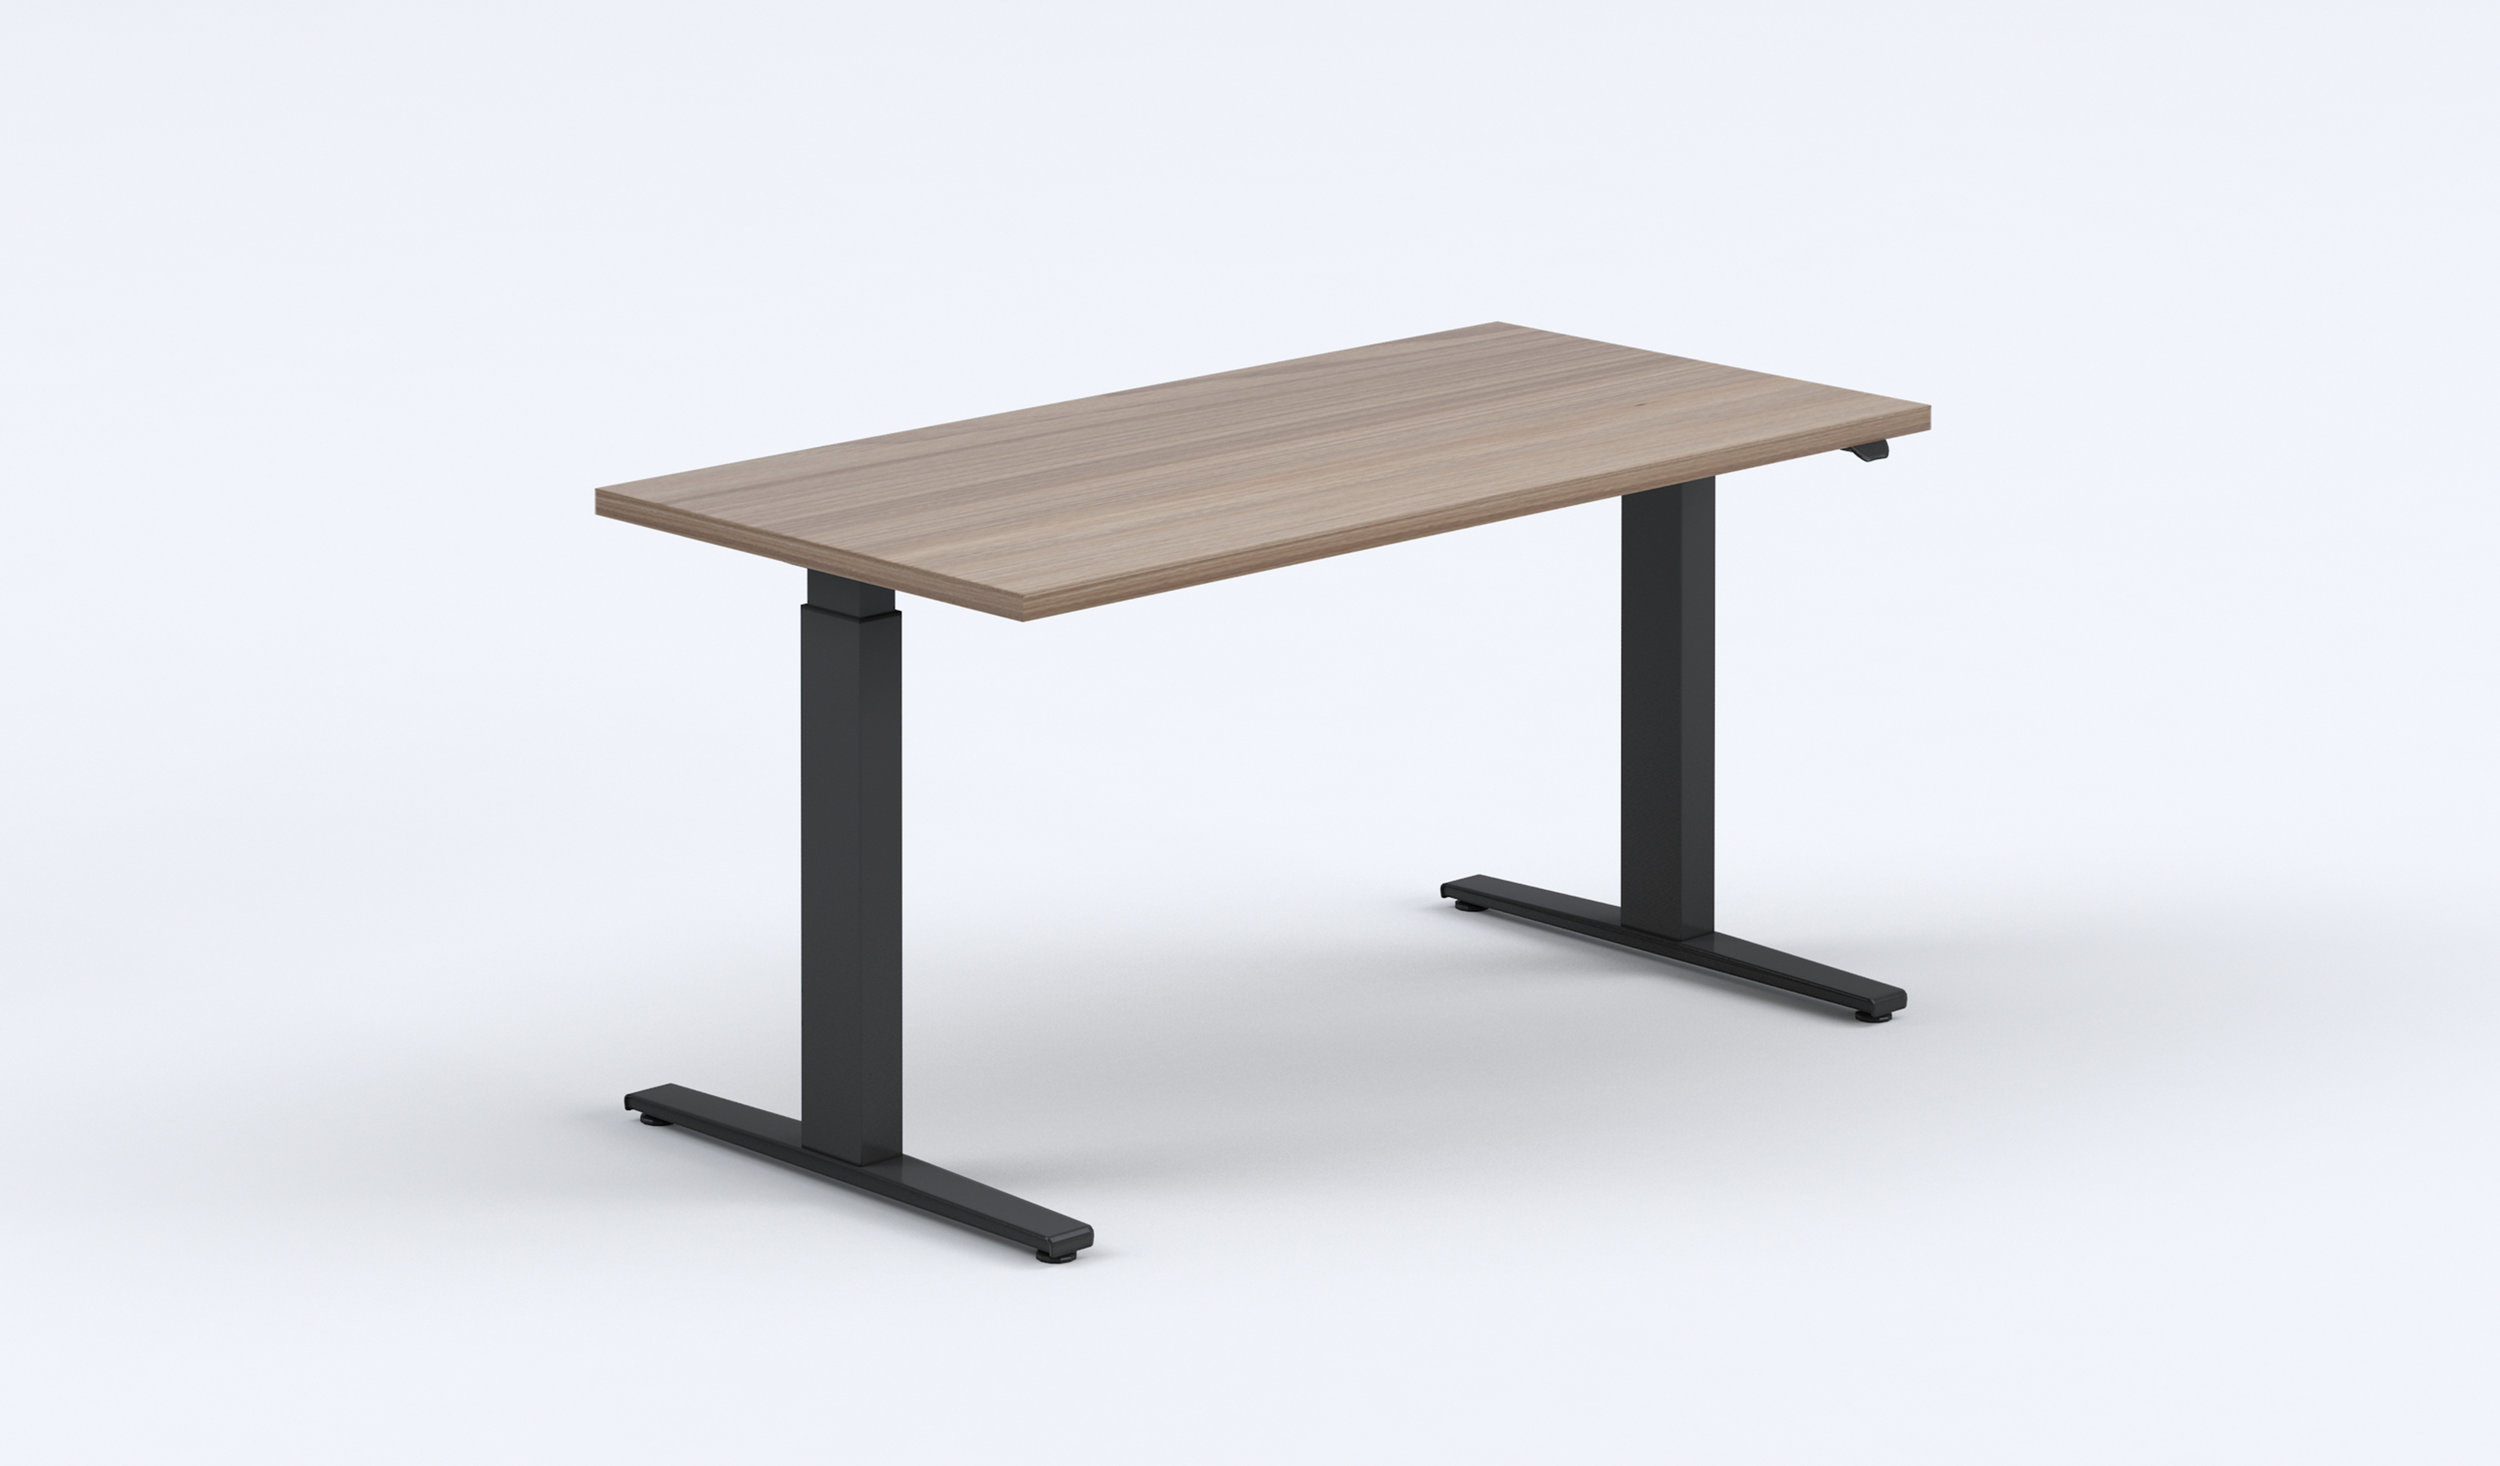 Office Desks and Tables - Your possibilities for creating unique desks and tables for individual workspaces, conference rooms, and community areas are nearly infinite with the variety of woods we offer. Choose from height-adjustable legs or fixed-height options.